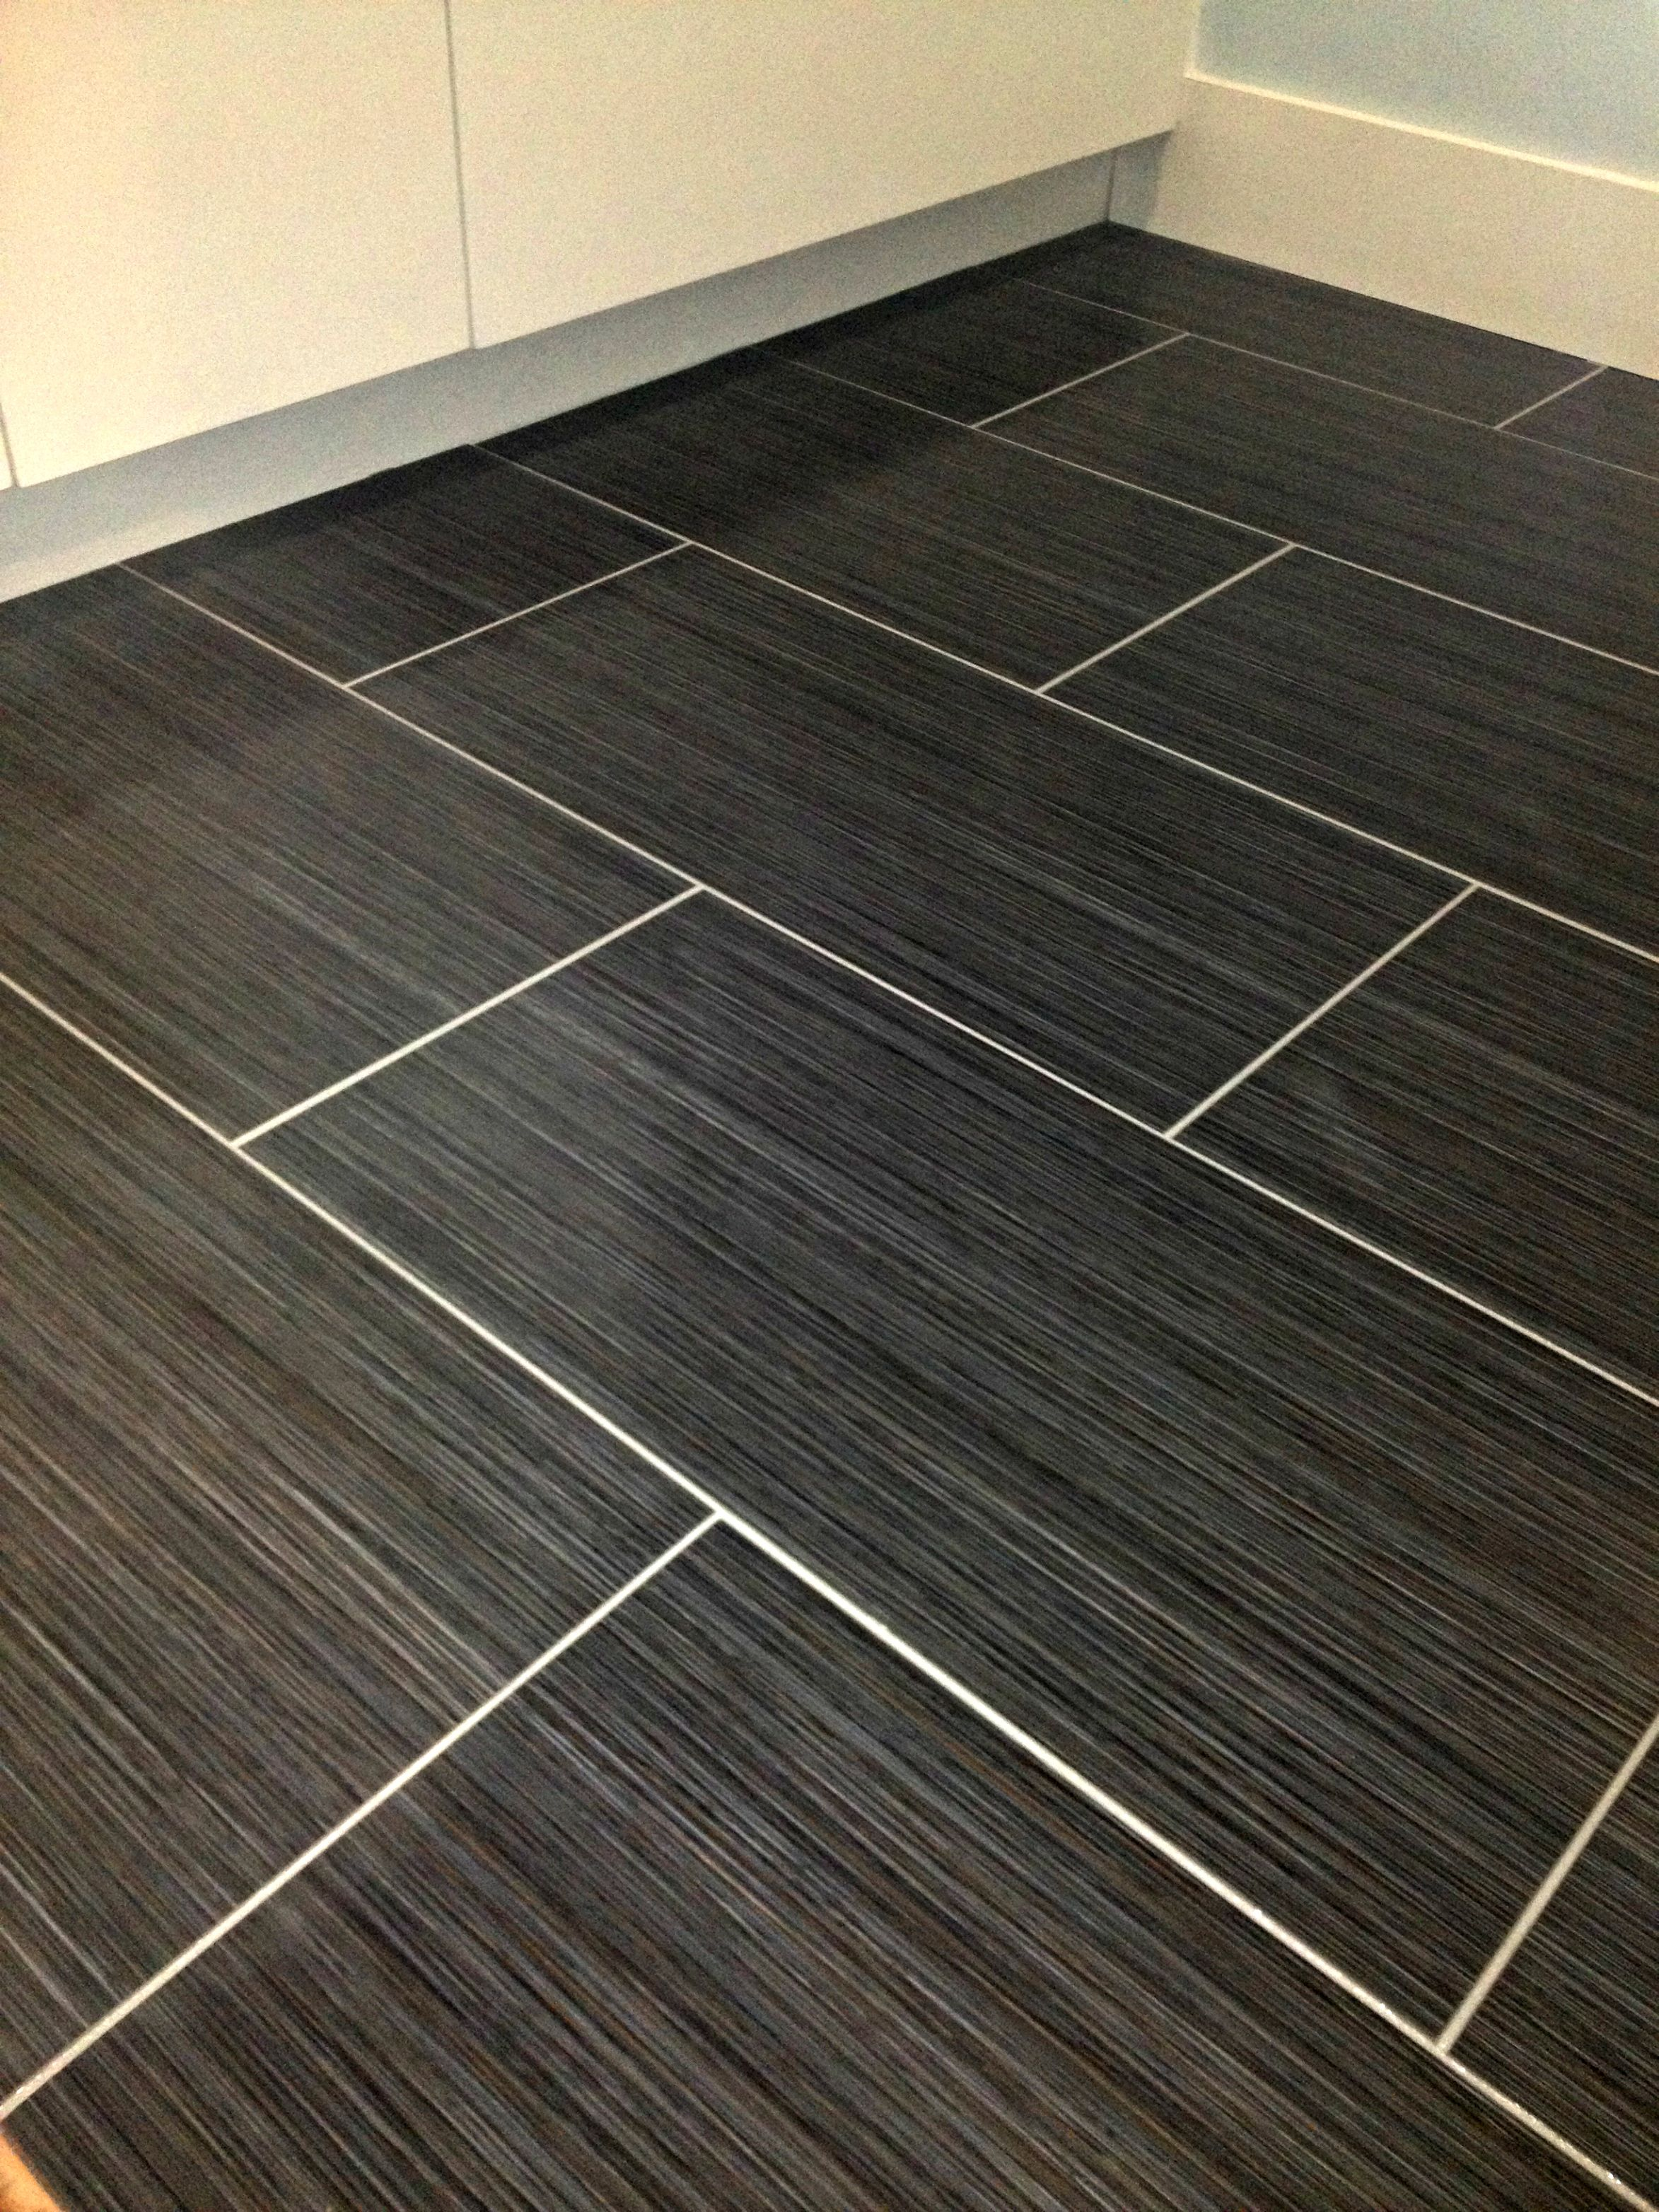 Dark Tile Flooring Fascinating Floor With Dark Tile And Light Grout Our Work  Tile Inspiration